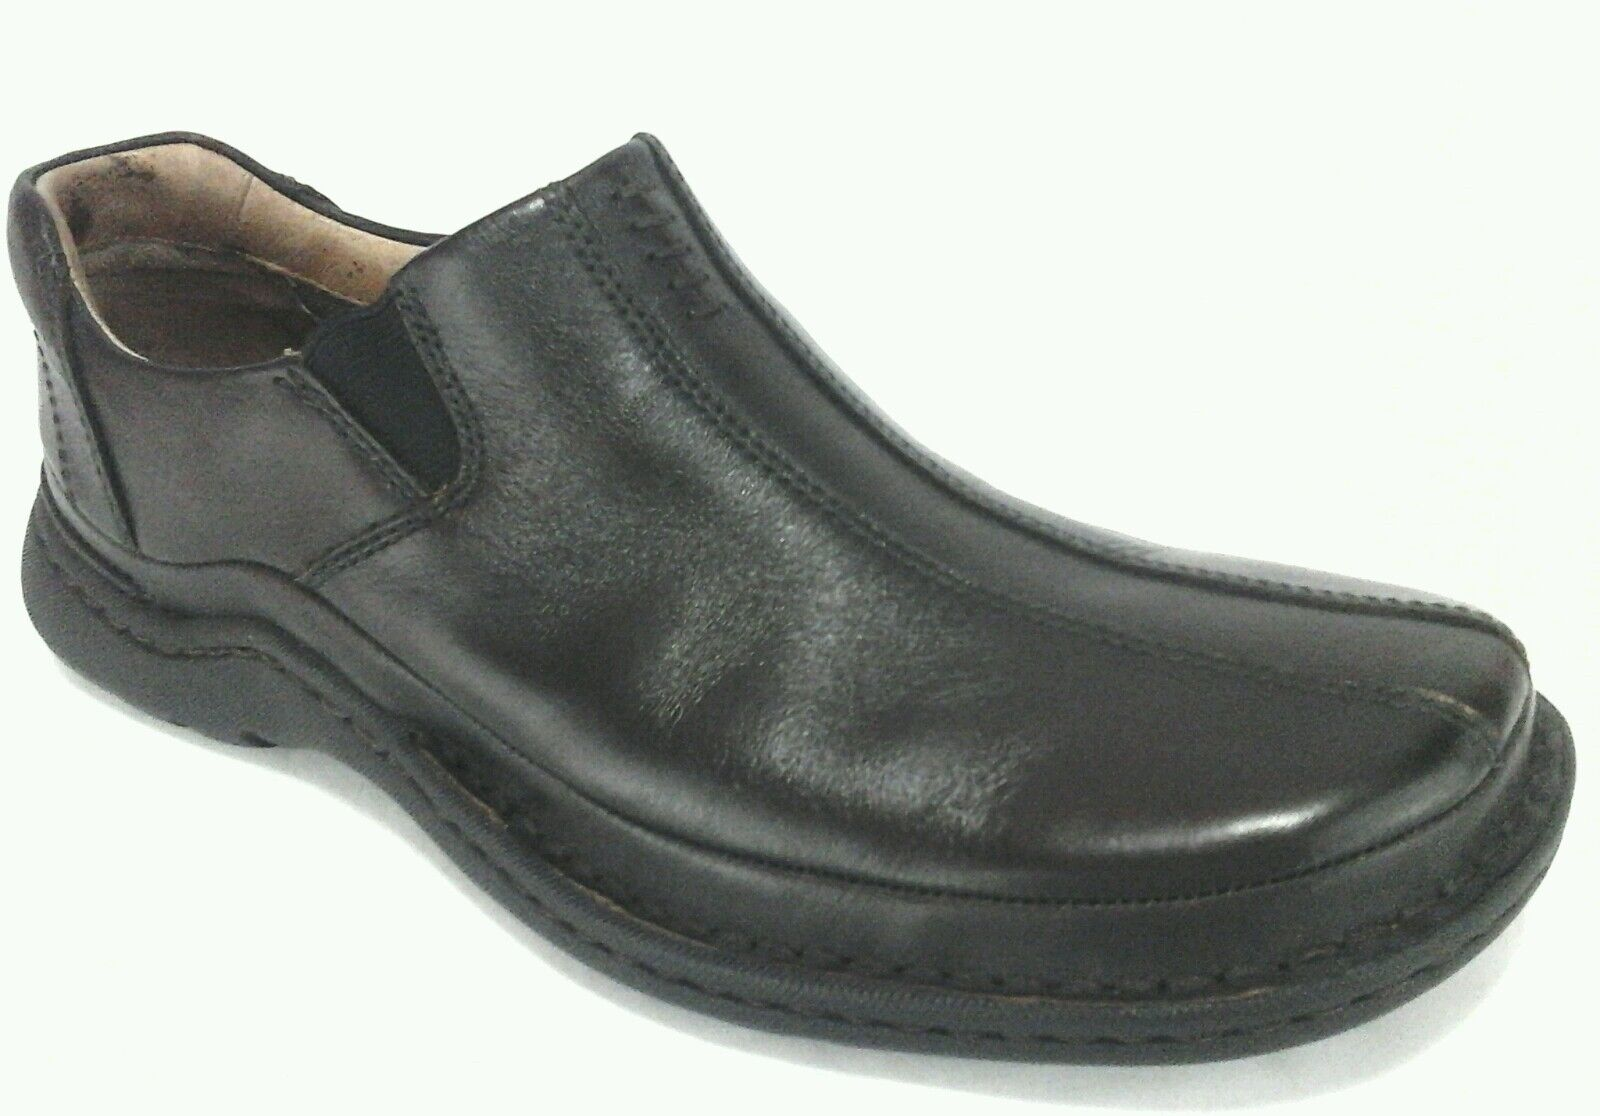 CLARKS Loafers Brown Leather Casual Comfort Slip On shoes Men's US 8